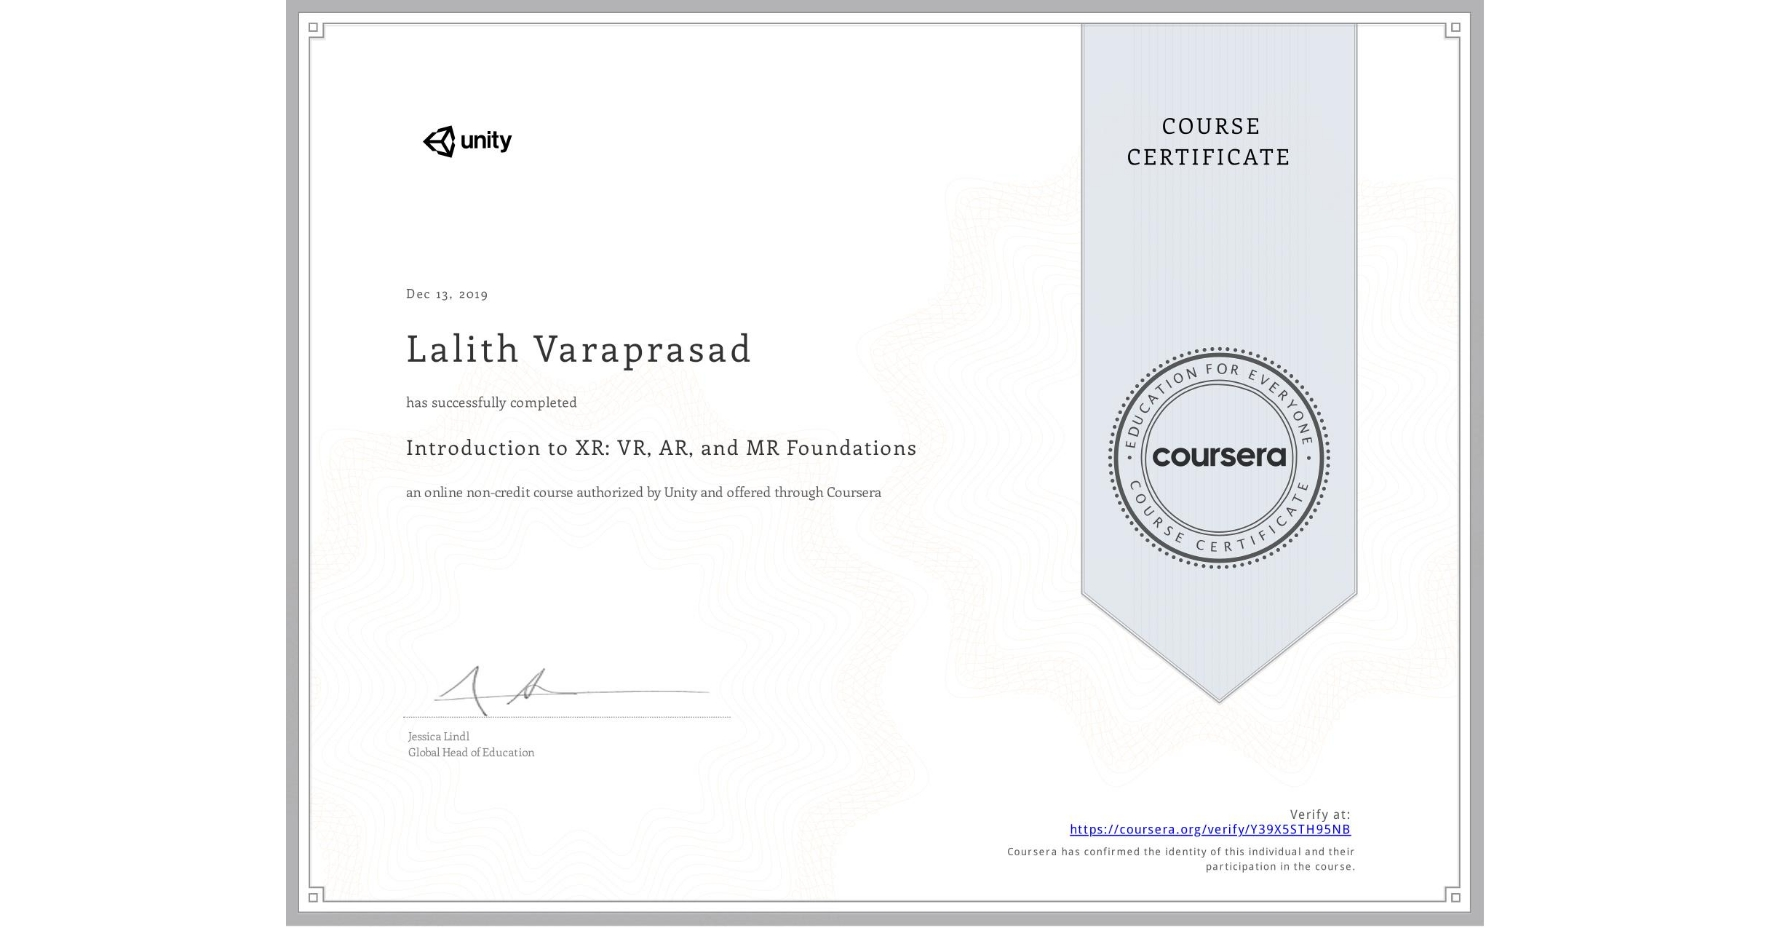 View certificate for Lalith Varaprasad  , Introduction to XR: VR, AR, and MR Foundations, an online non-credit course authorized by Unity and offered through Coursera